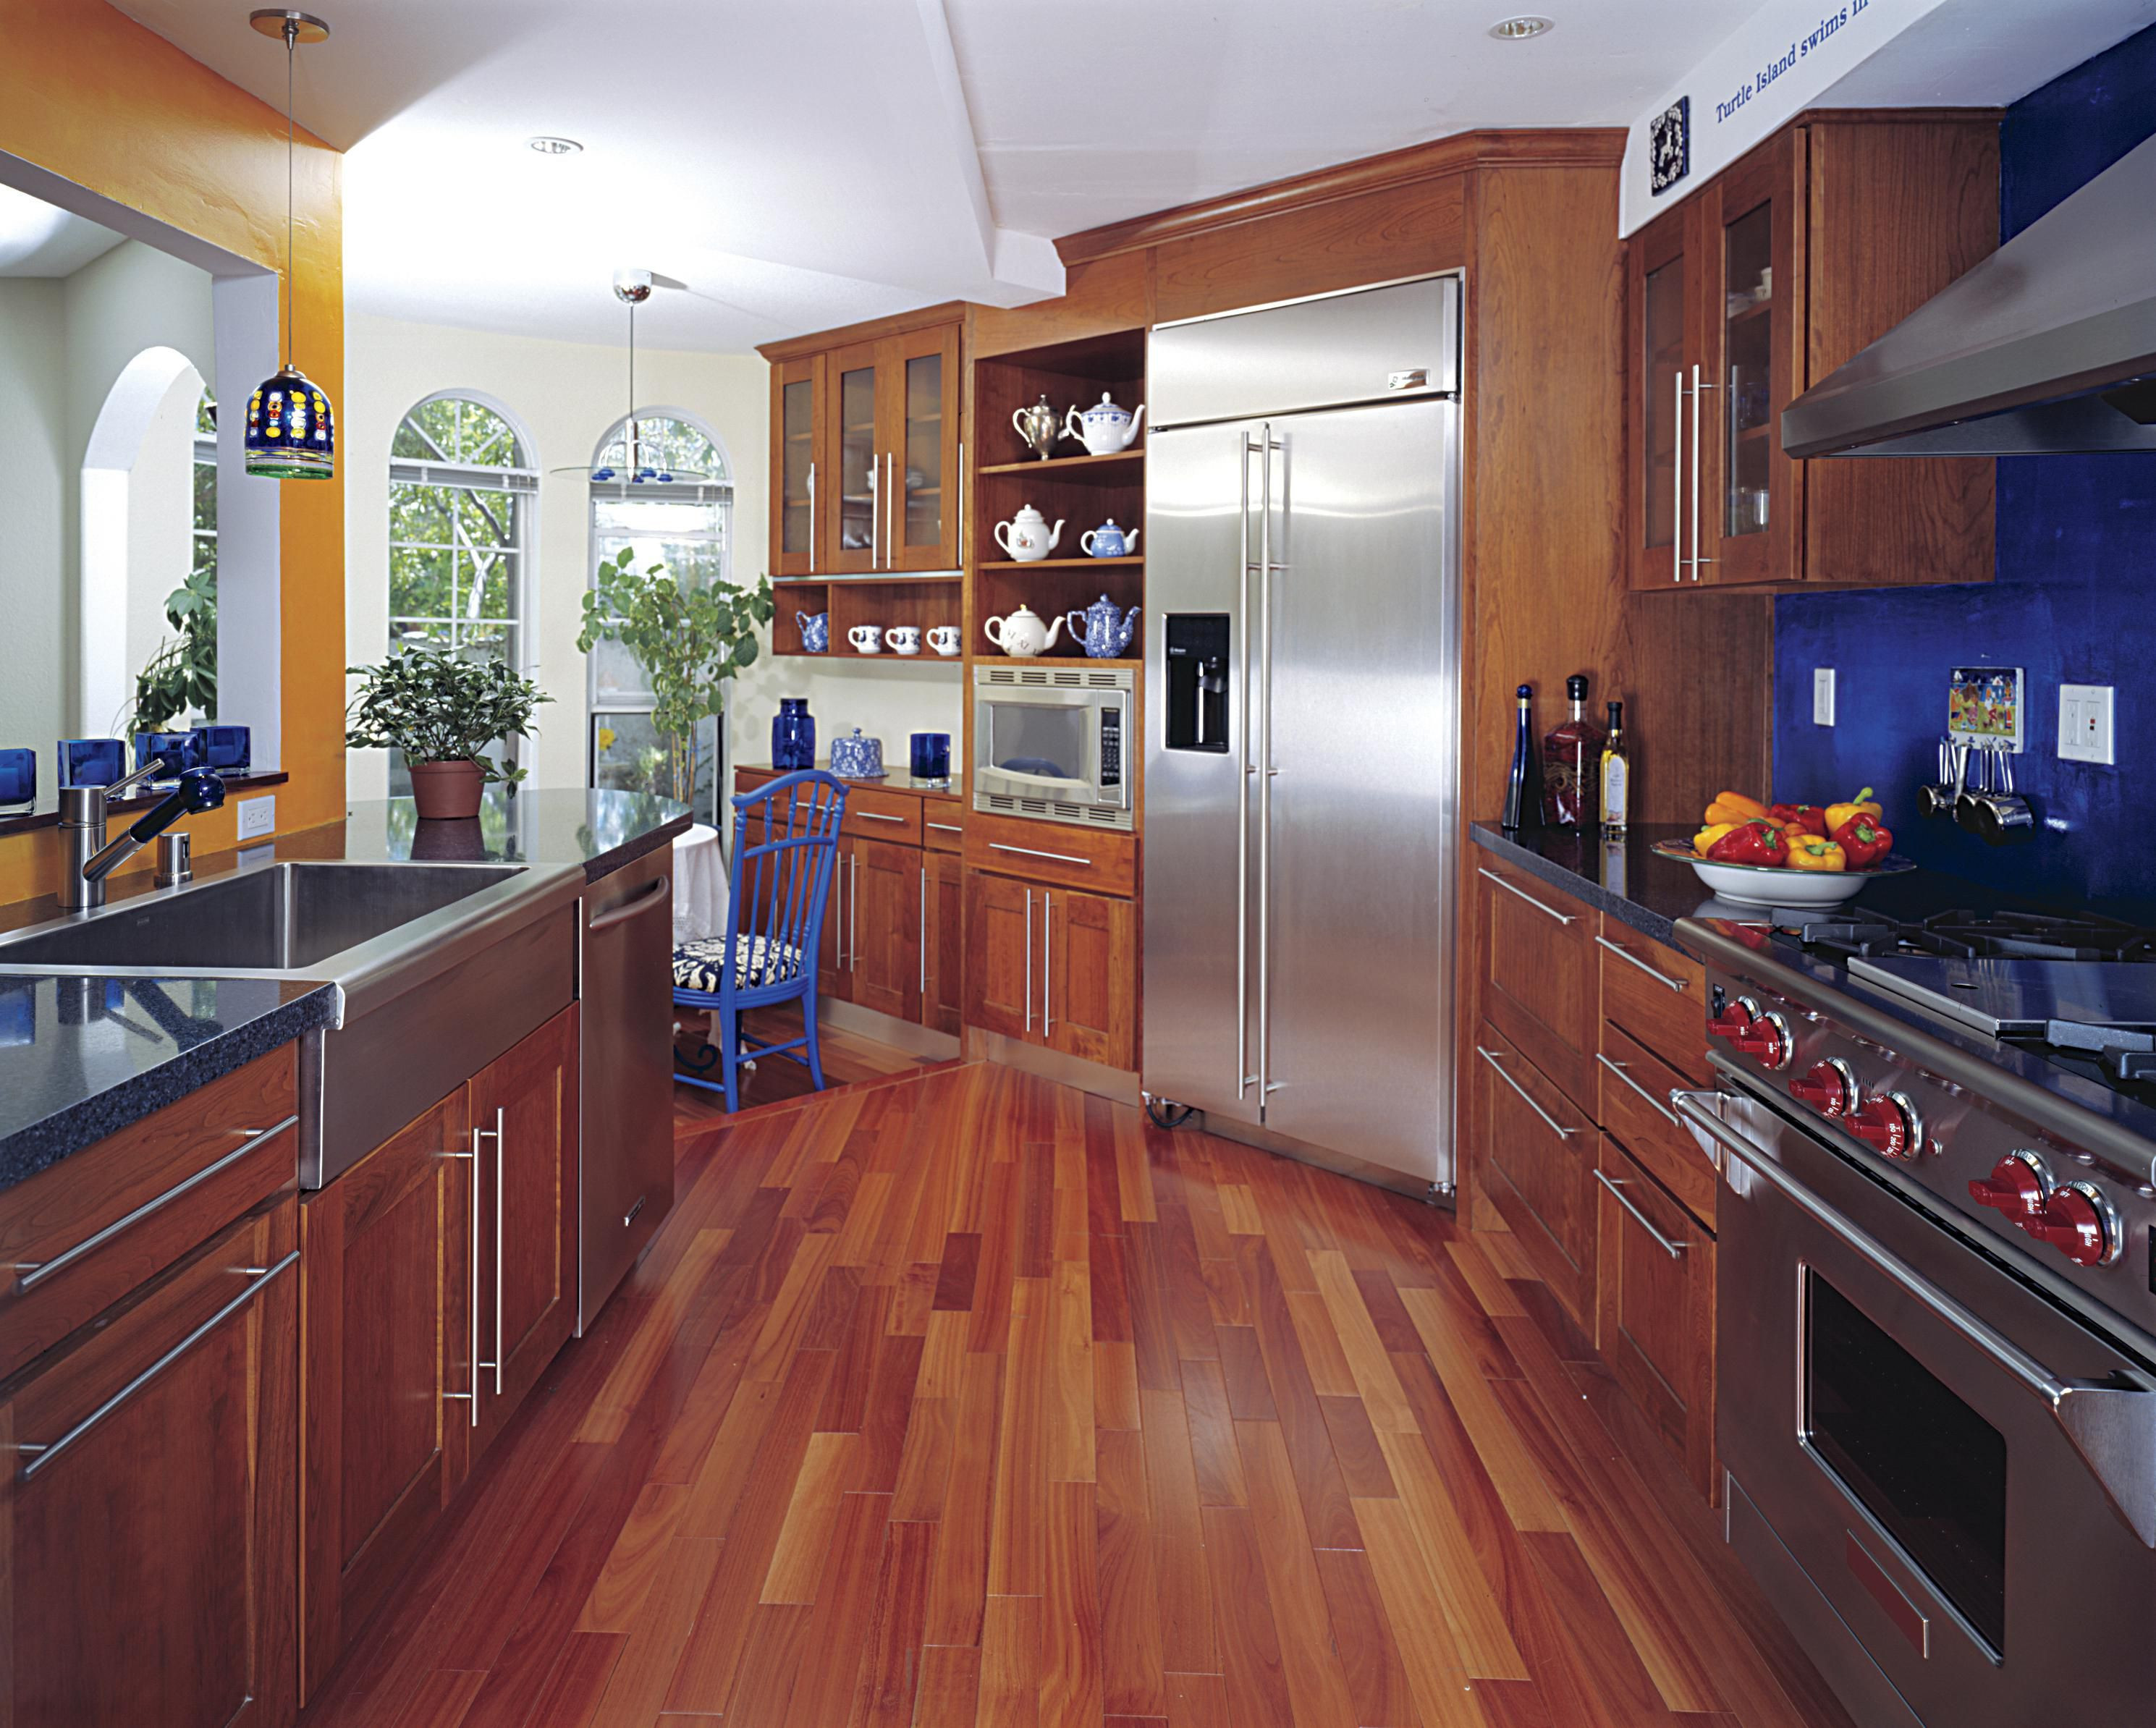 hardwood floor kitchen cabinet combinations of hardwood floor in a kitchen is this allowed within 186828472 56a49f3a5f9b58b7d0d7e142